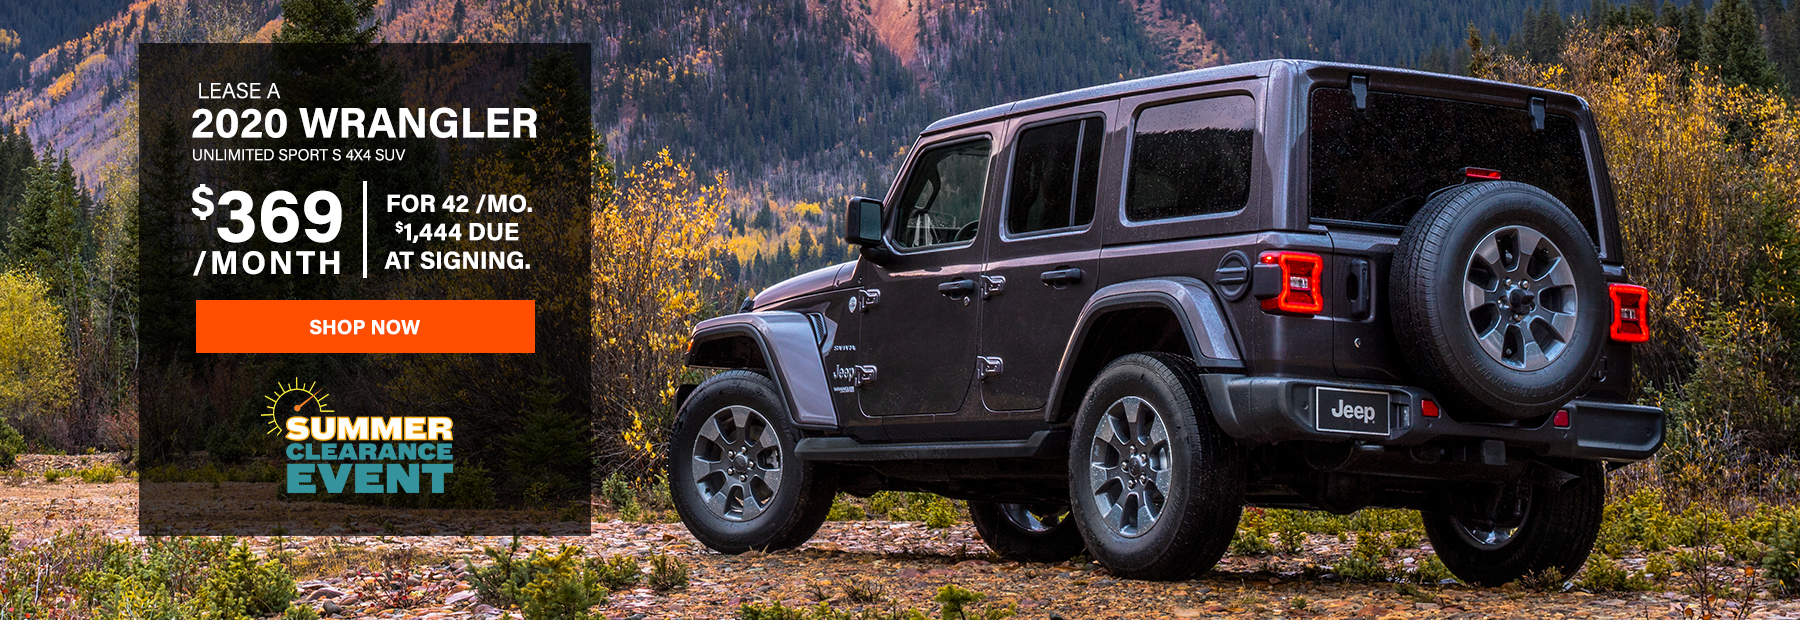 Lease a 2020 Jeep Wrangler Unlimited Sport S 4x4 SUV